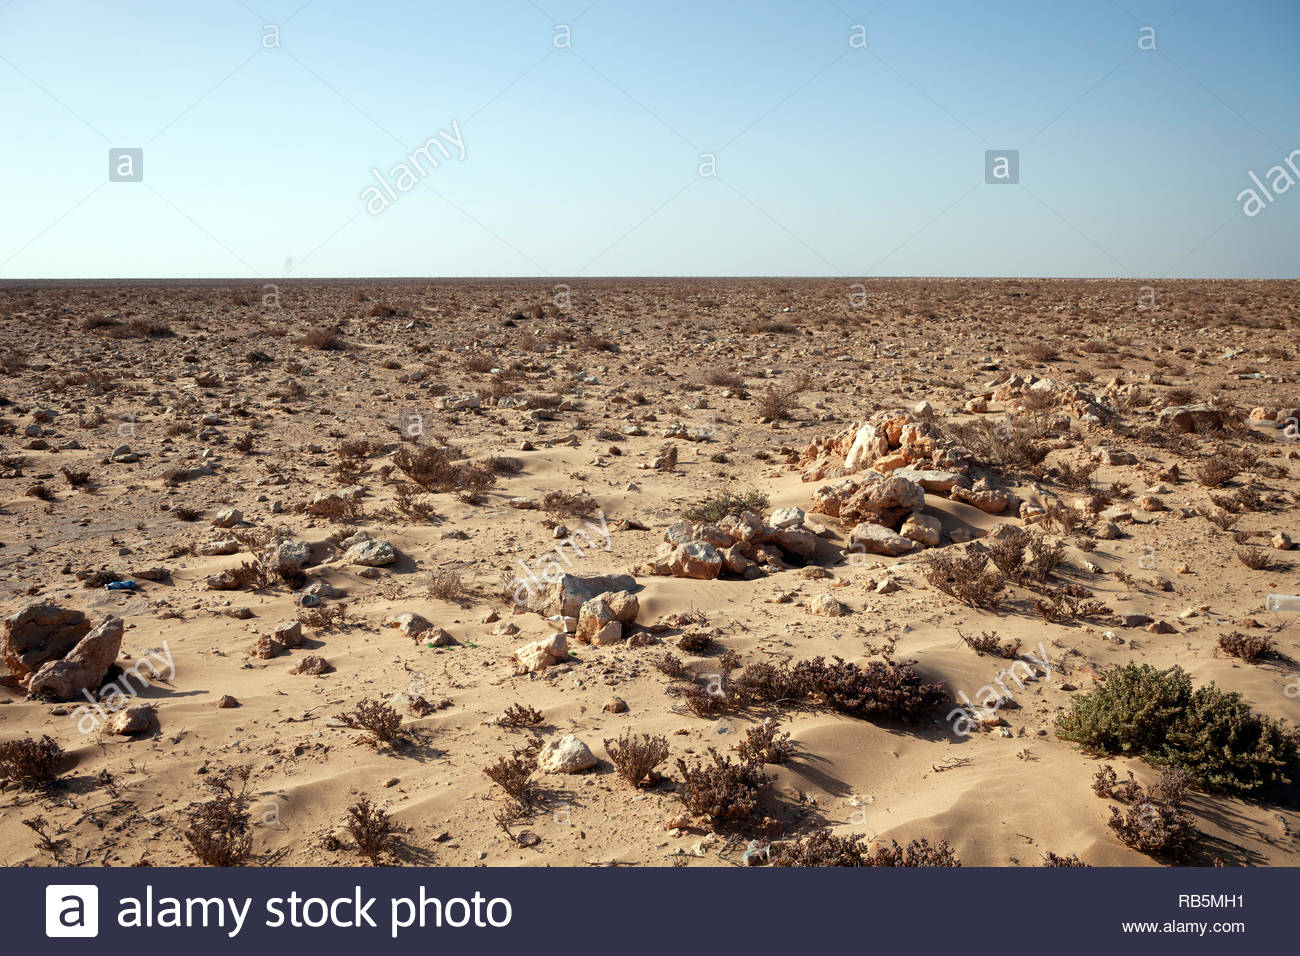 Stones and sand in Western Sahara - Stock Image